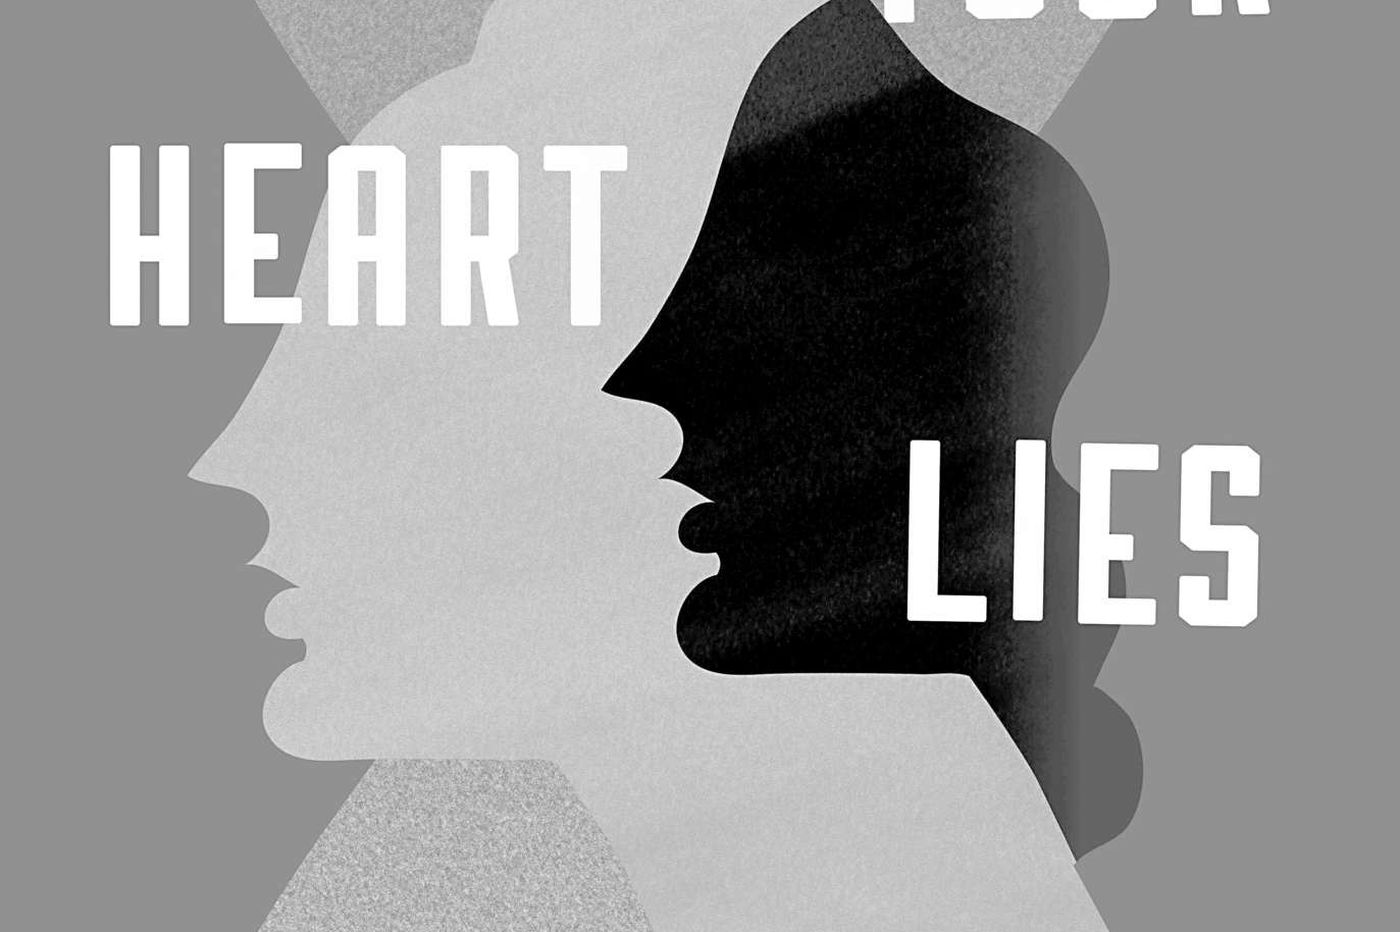 Mary Gordon's 'There Your Heart Lies': Hackneyed and soggy